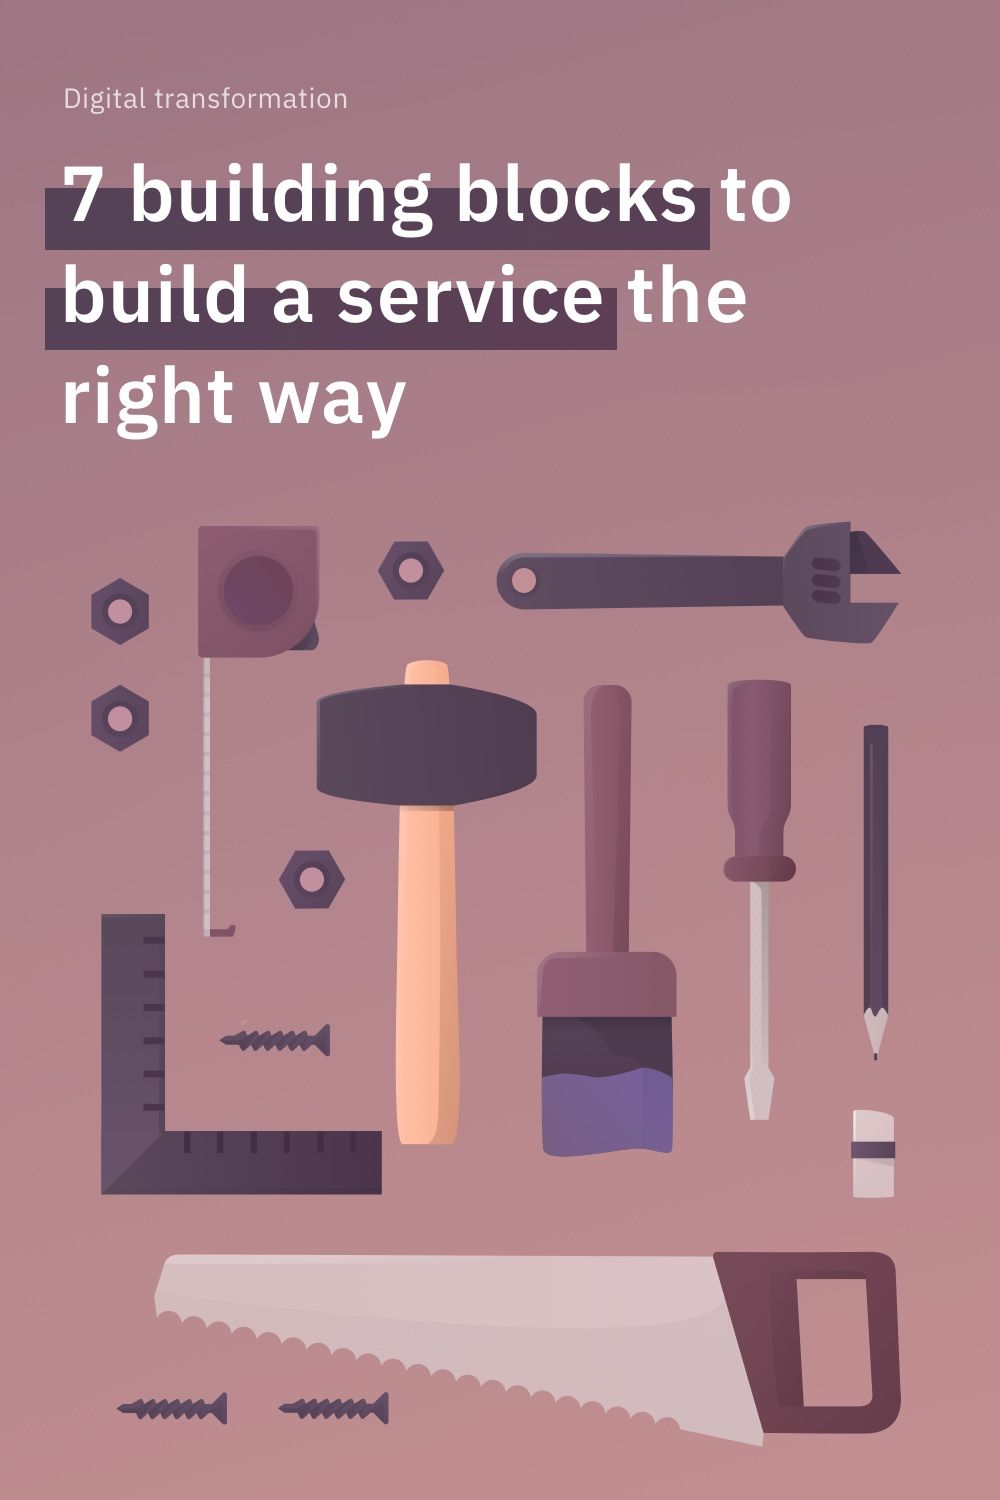 7 Steps To Build A Service Or Product In 2020 Business Perspective Service Design Building